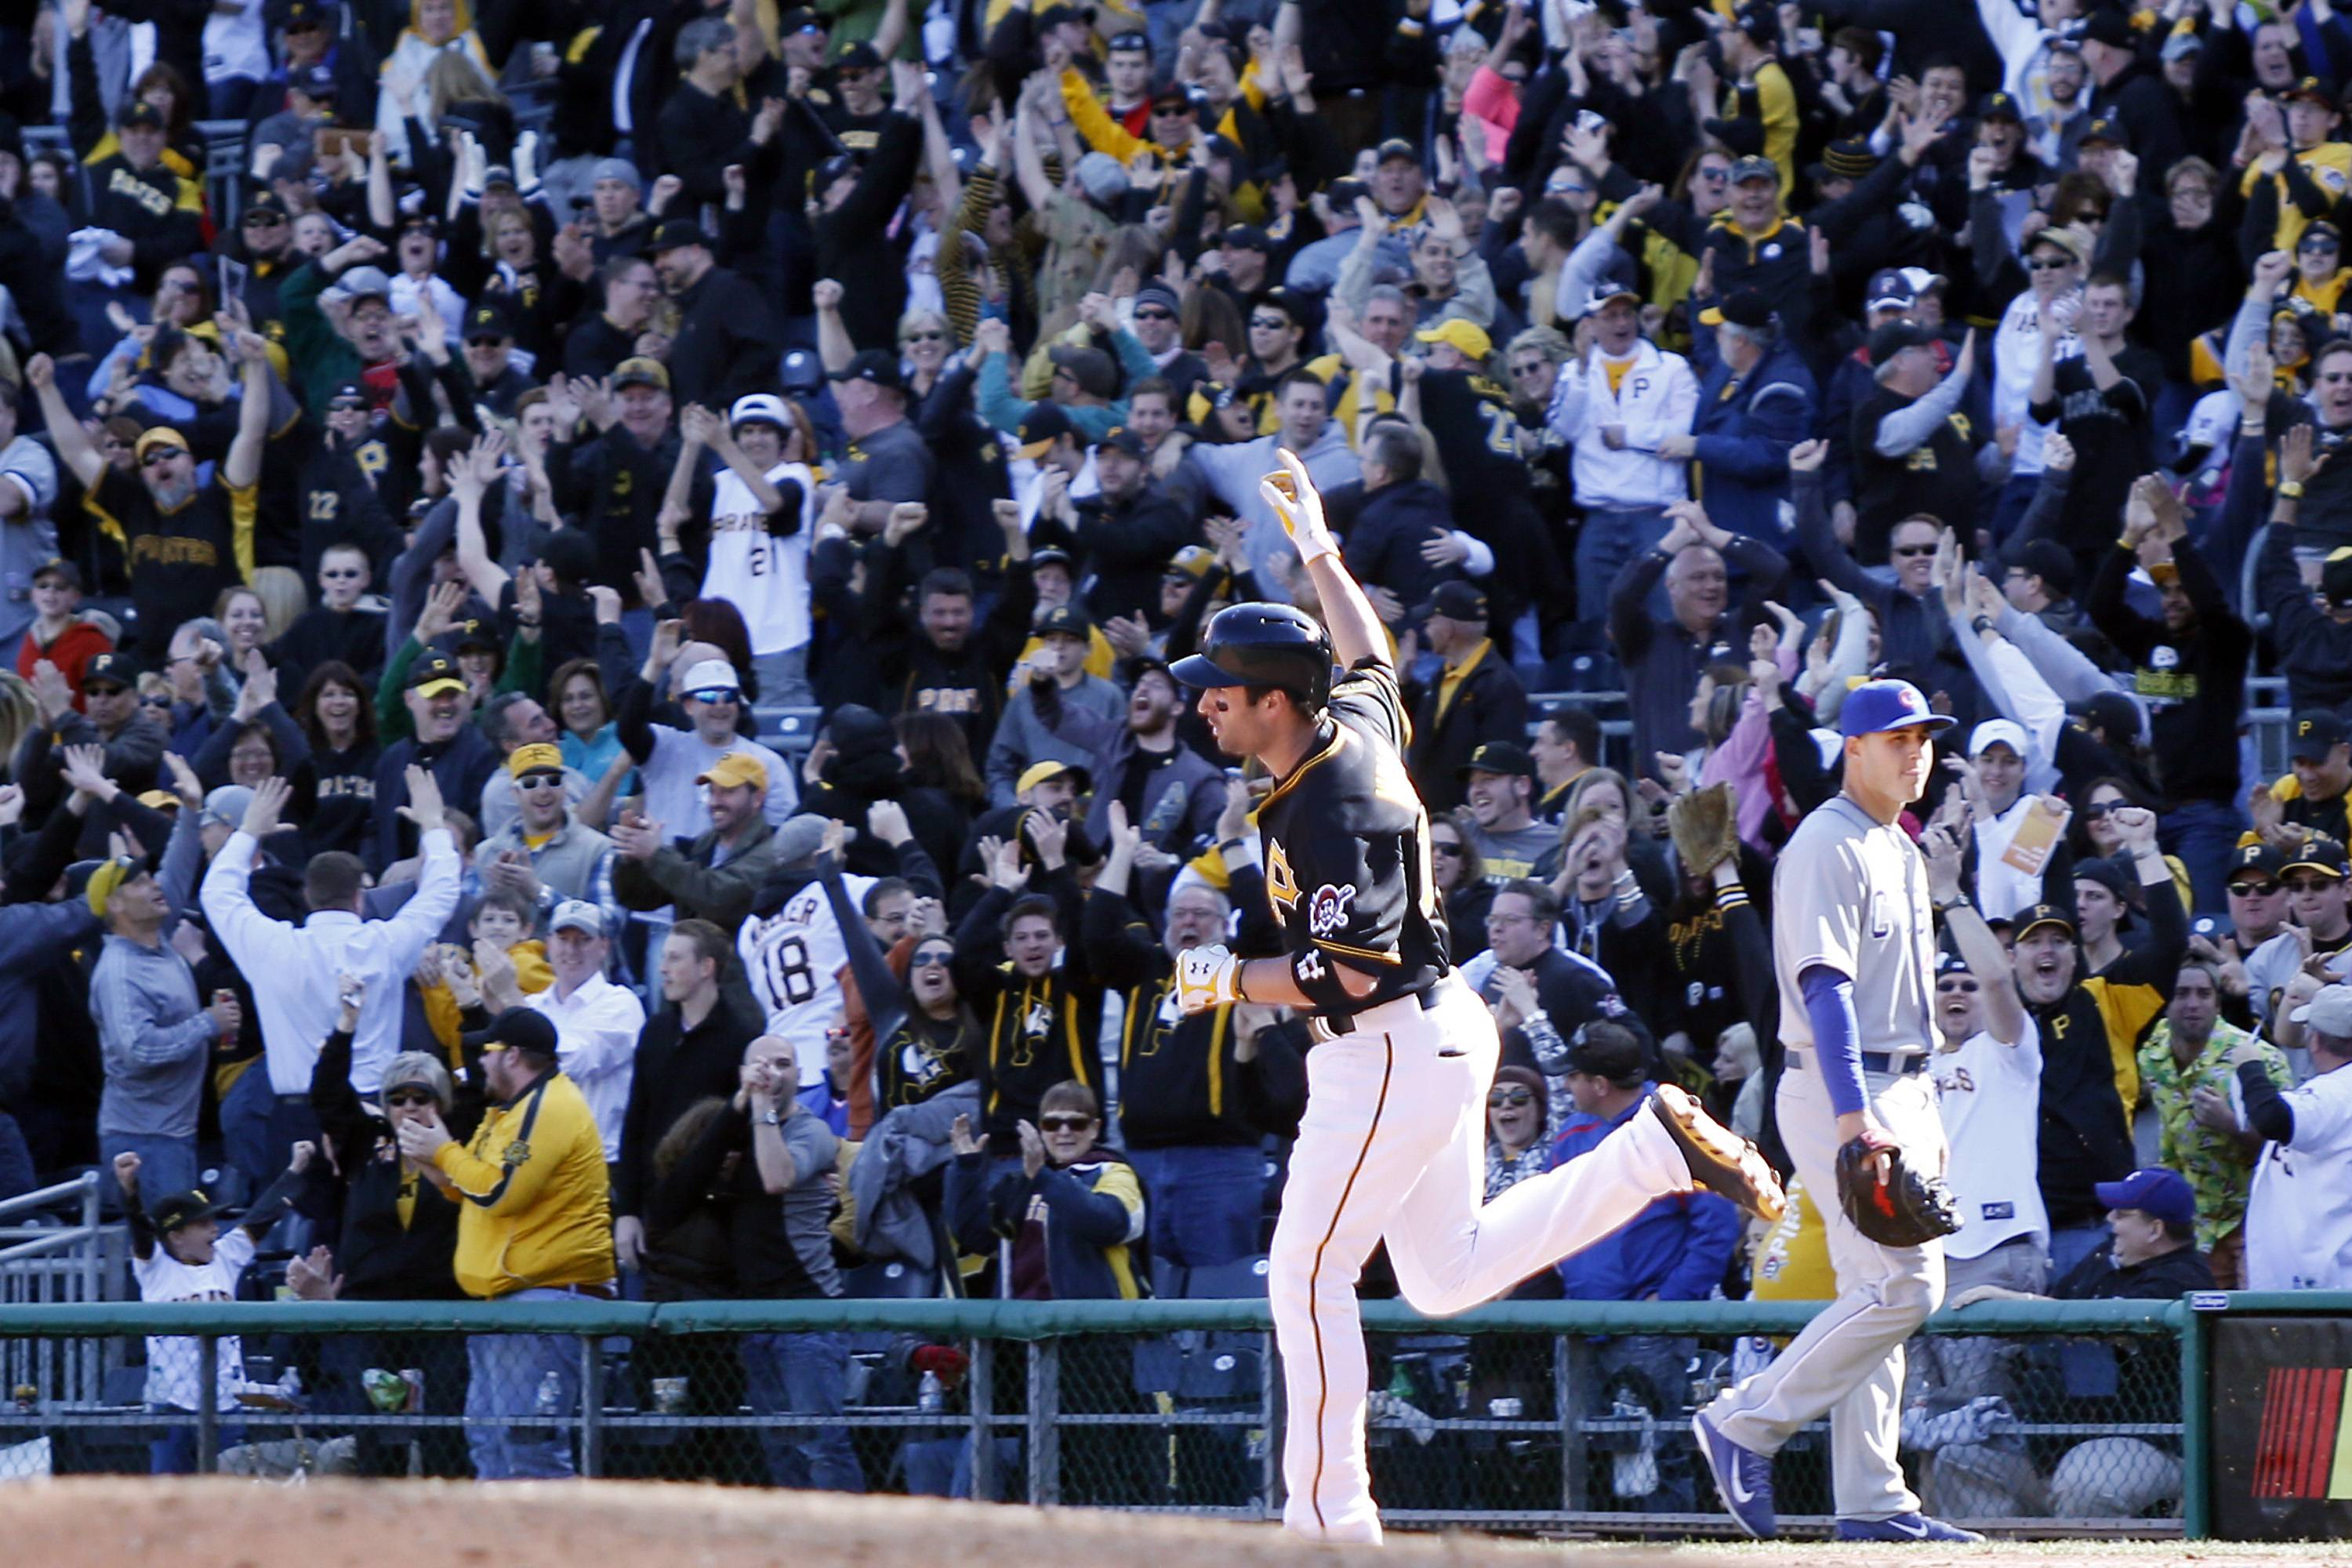 The Pirates' Neil Walker rounds the bases after hitting the game-winning home run while Cubs first baseman Anthony Rizzo walks off the field in the 10th inning of Opening Day in Pittsburgh.